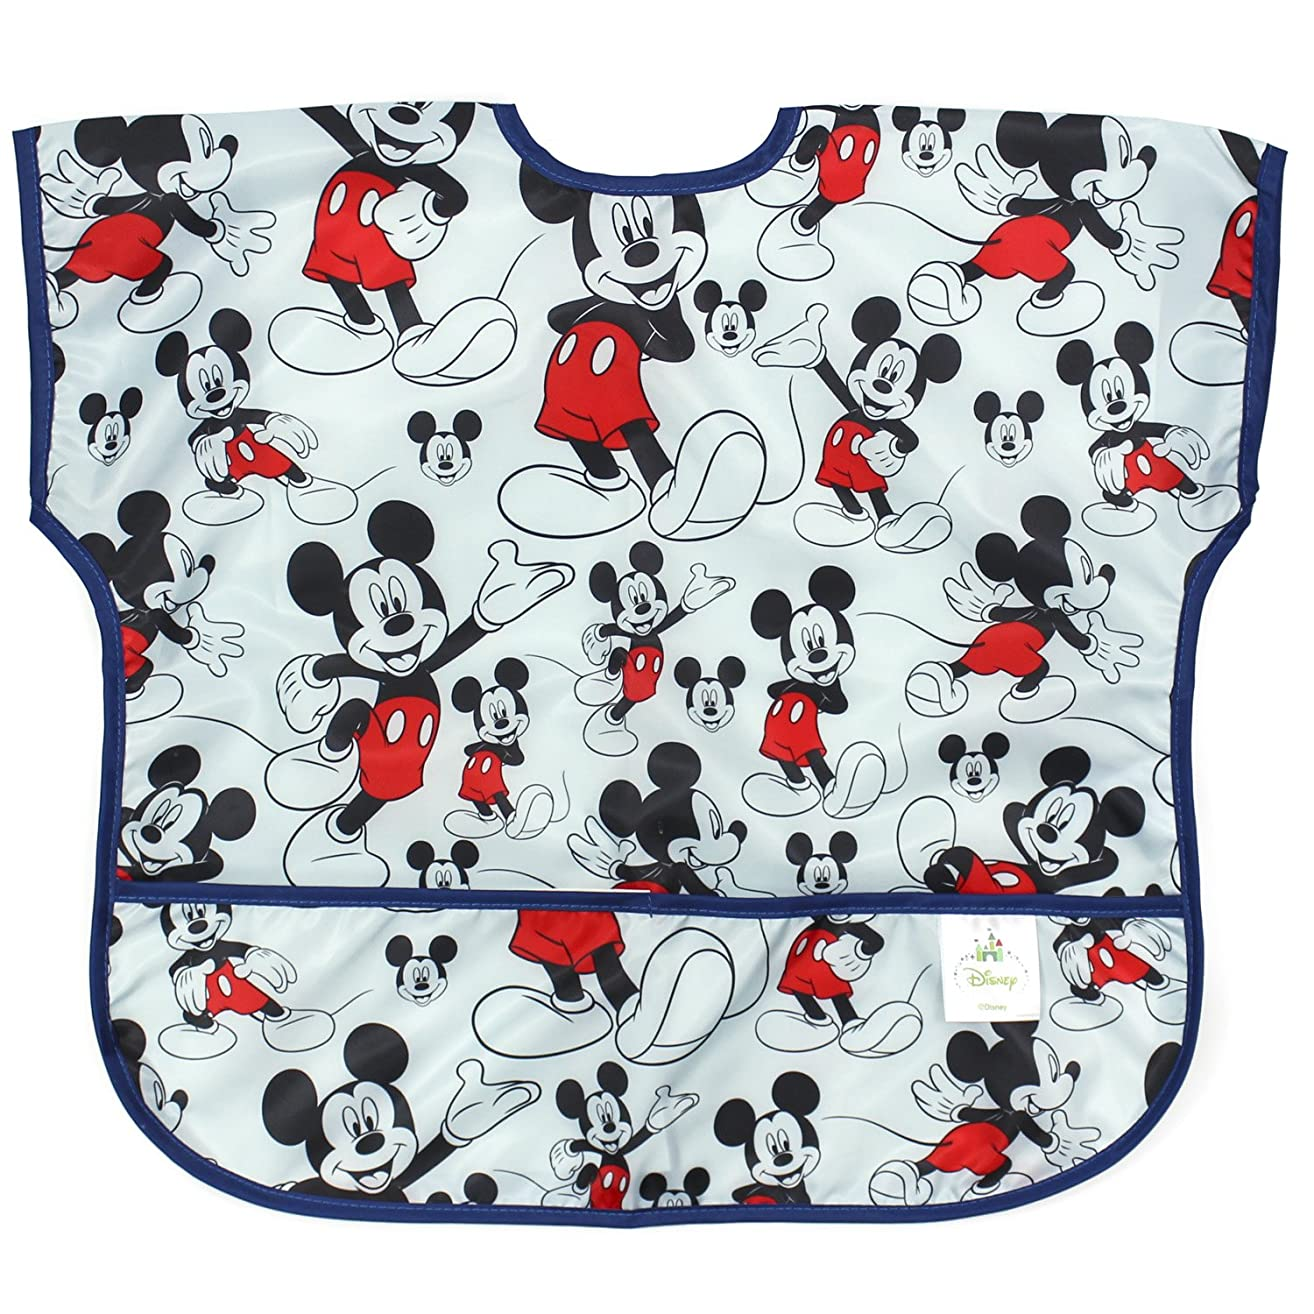 Bumkins Disney Mickey Mouse Junior Bib / Short Sleeve Toddler Bib / Smock 1-3 Years, Waterproof, Washable, Stain and Odor Resistant –  Classic